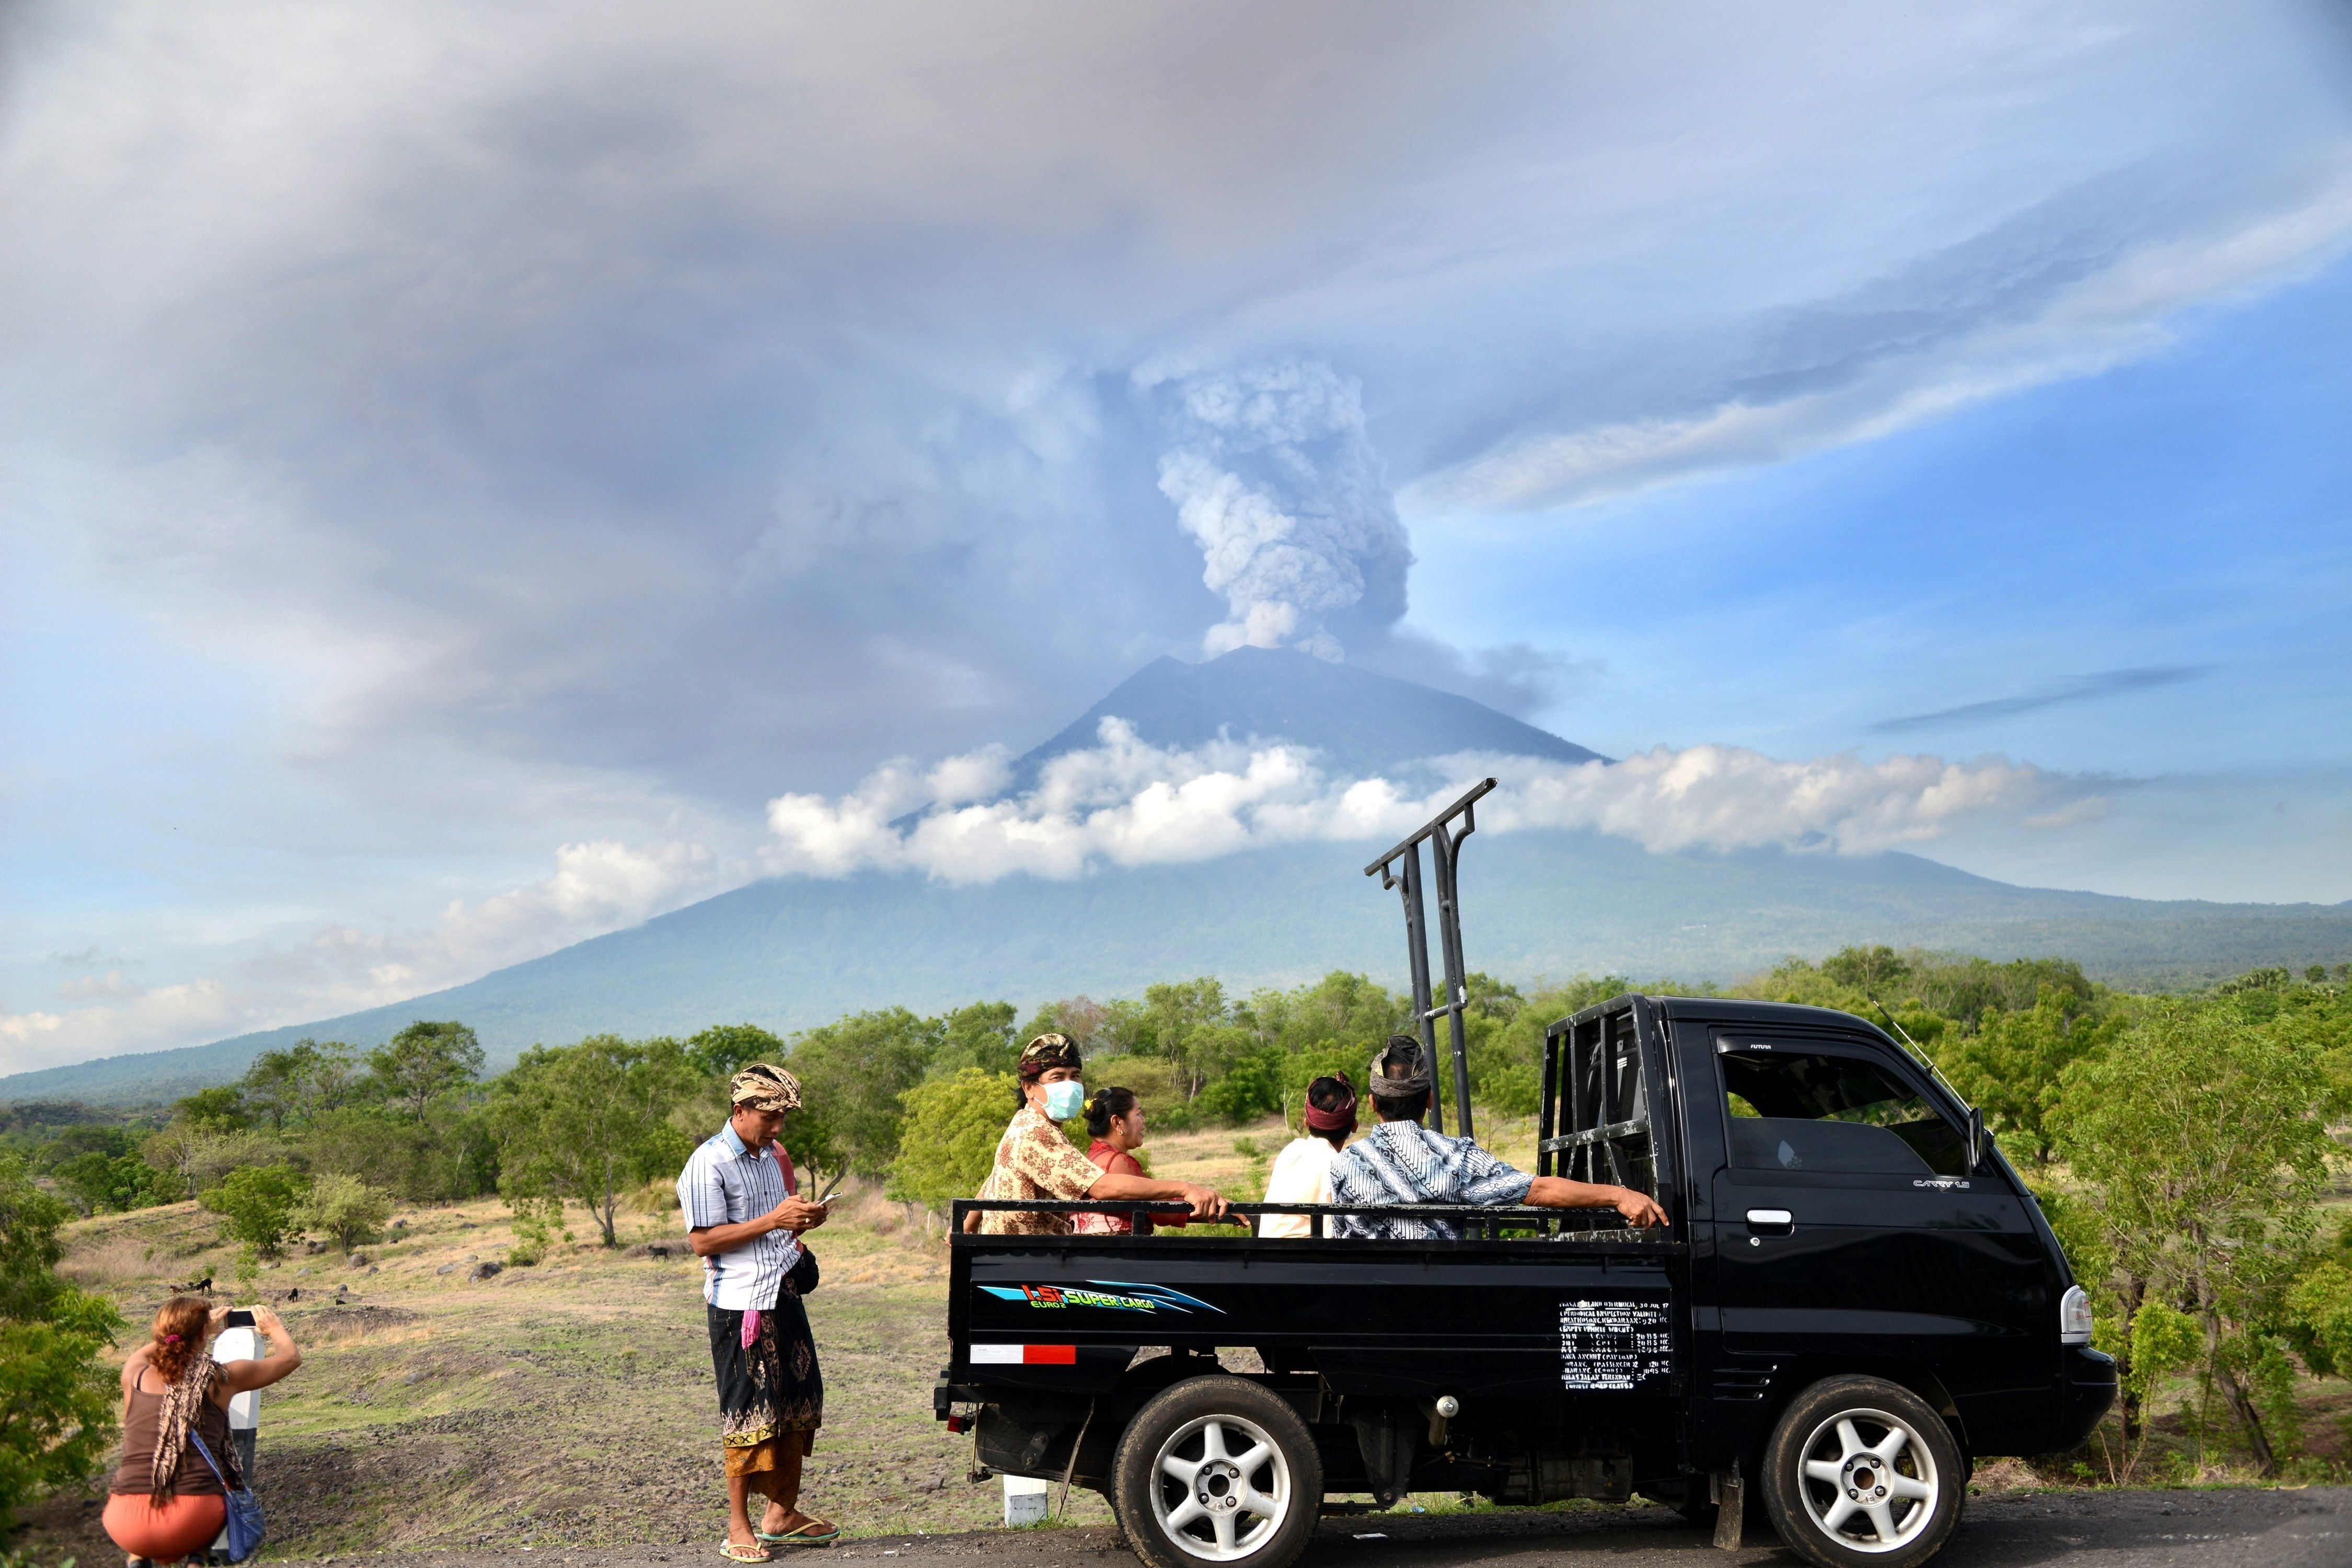 <strong>Mount Agung continues to be a popular tourist attraction. </strong>